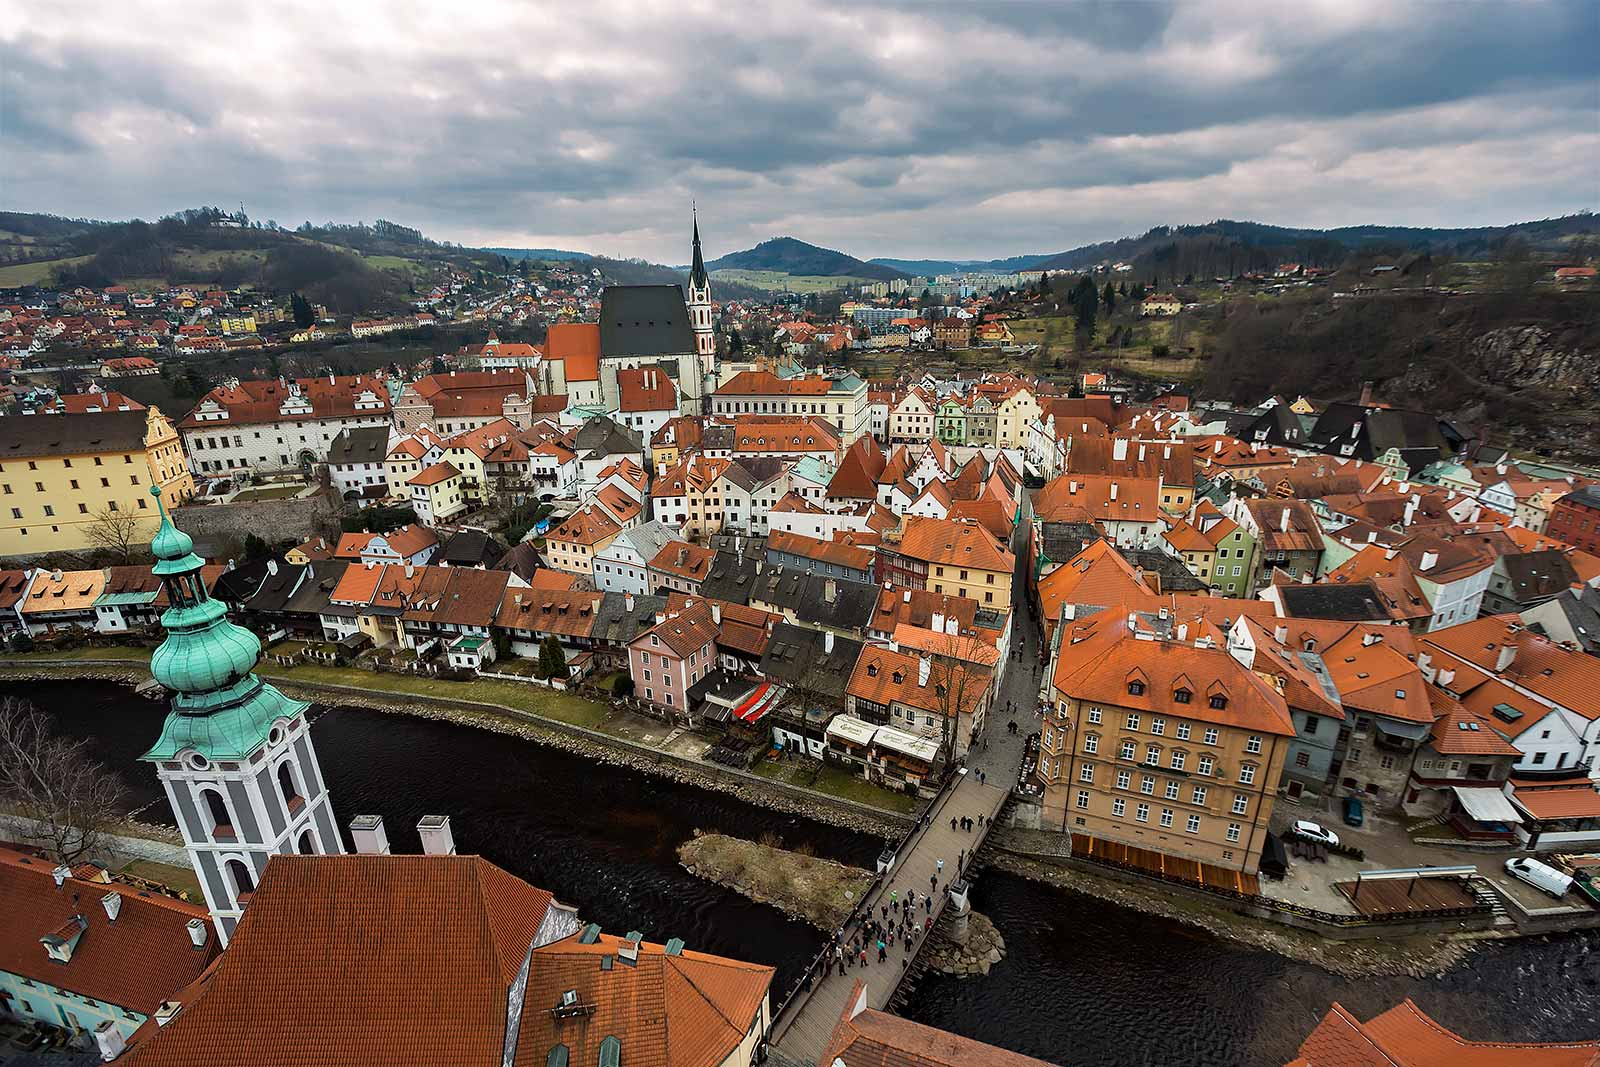 cesky-krumlov-view-from-castle-tower-czech-republic-1